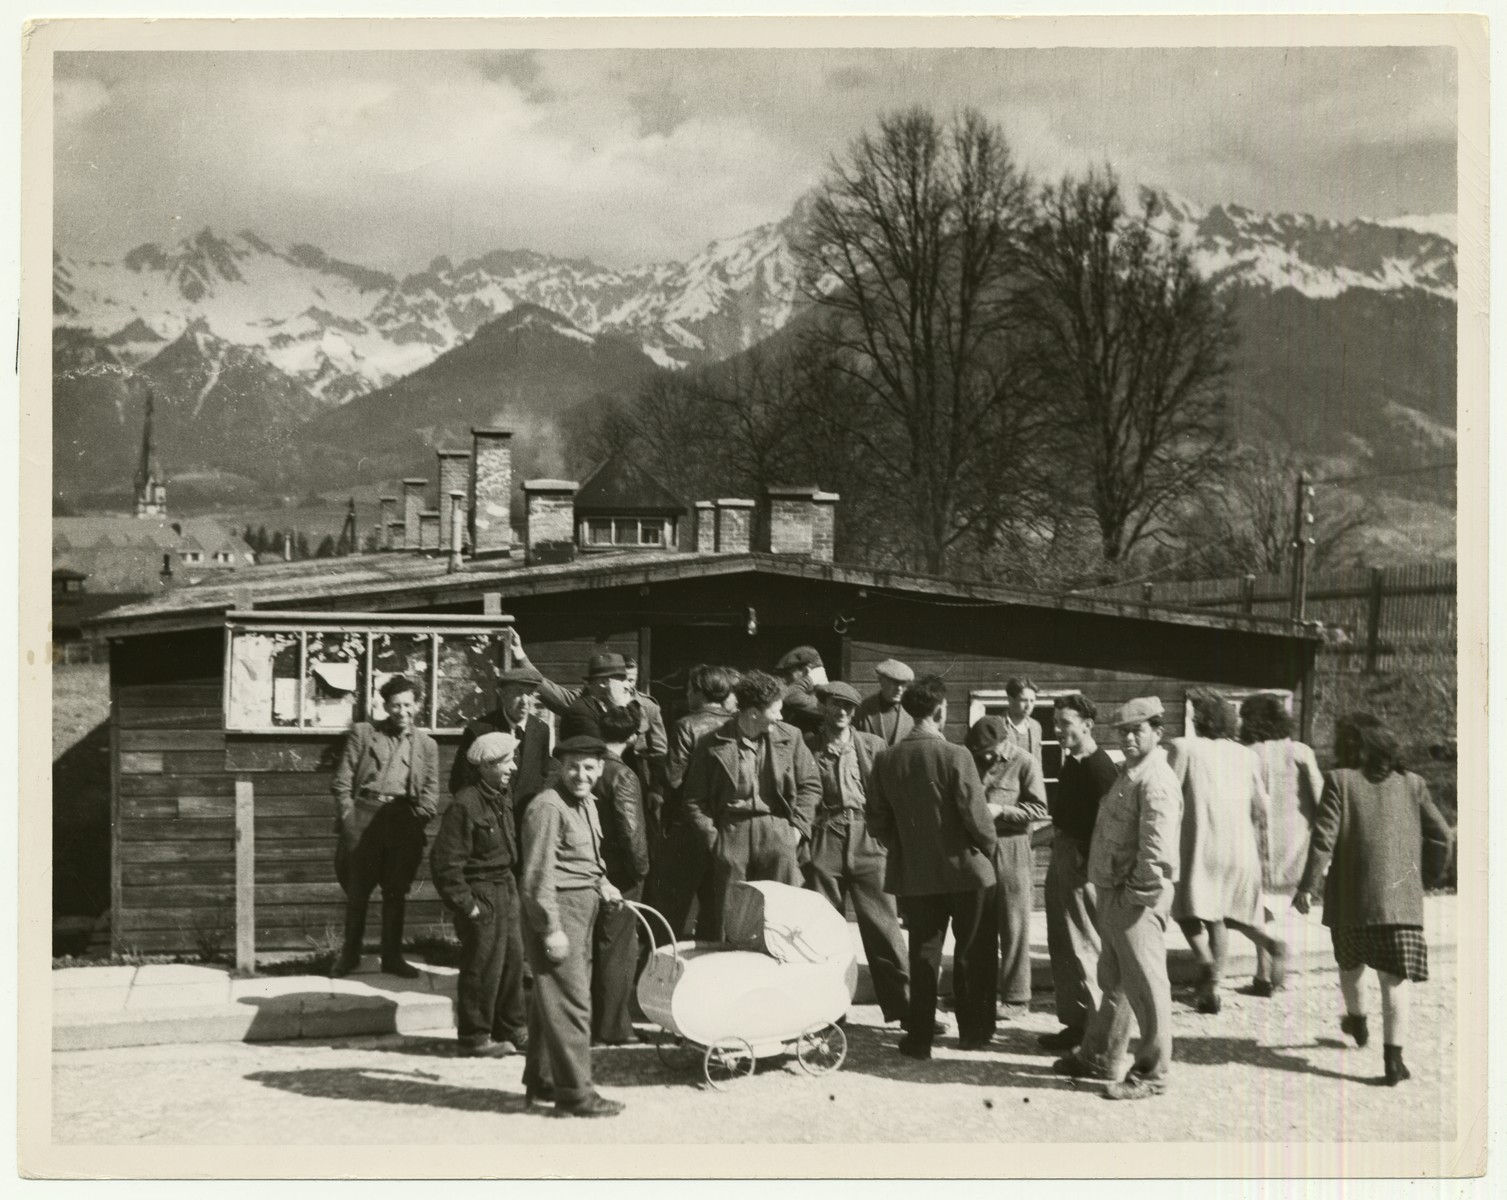 """Holocaust survivors gather in a displaced persons camp in Admont, Austria  The Admont DP camp, located in the British zone of Austria, was one of the largest, housing about 2000 Jews.  The camp was closed in 1948.  The handwritten caption on the back of the photograph reads: """"A DP Camp in Admont, Austria."""""""